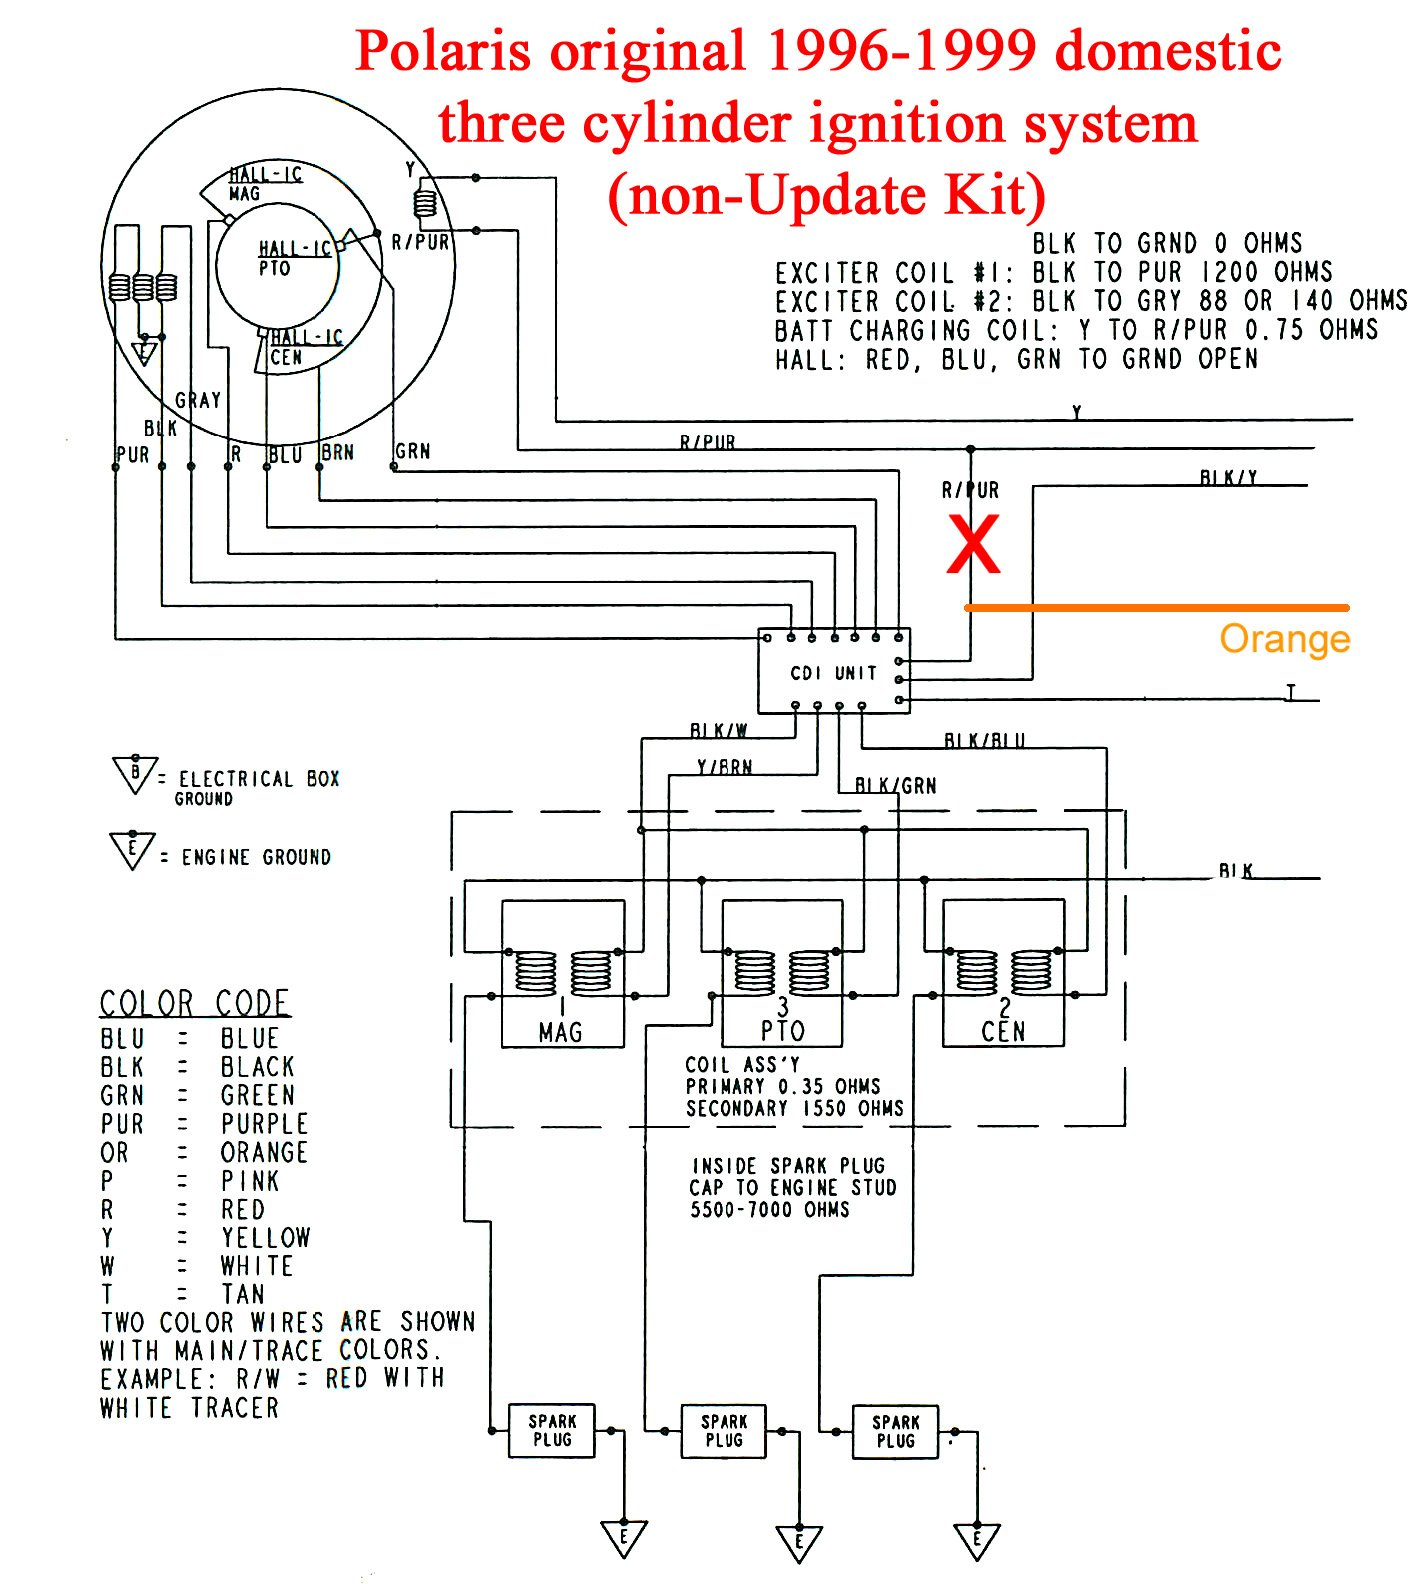 jet ski wiring diagram 1989 polaris indy 650 wiring diagram h4ckenergy